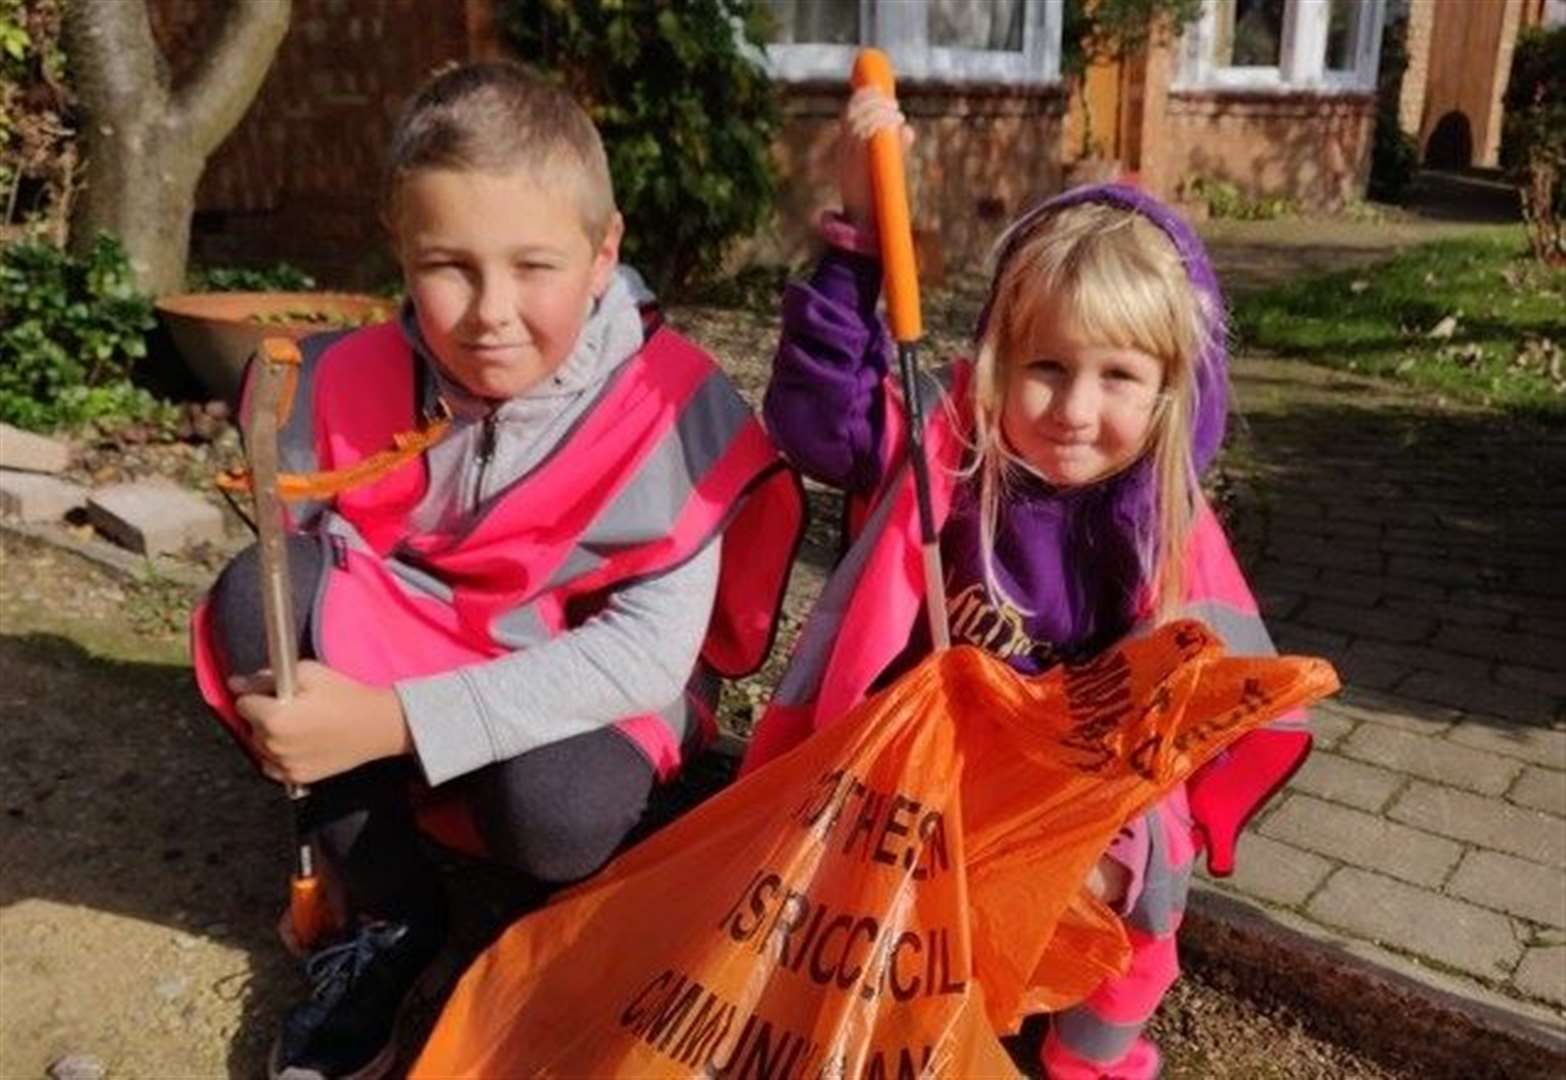 South Kesteven Council urges families to do their bit to keep communities litter-free